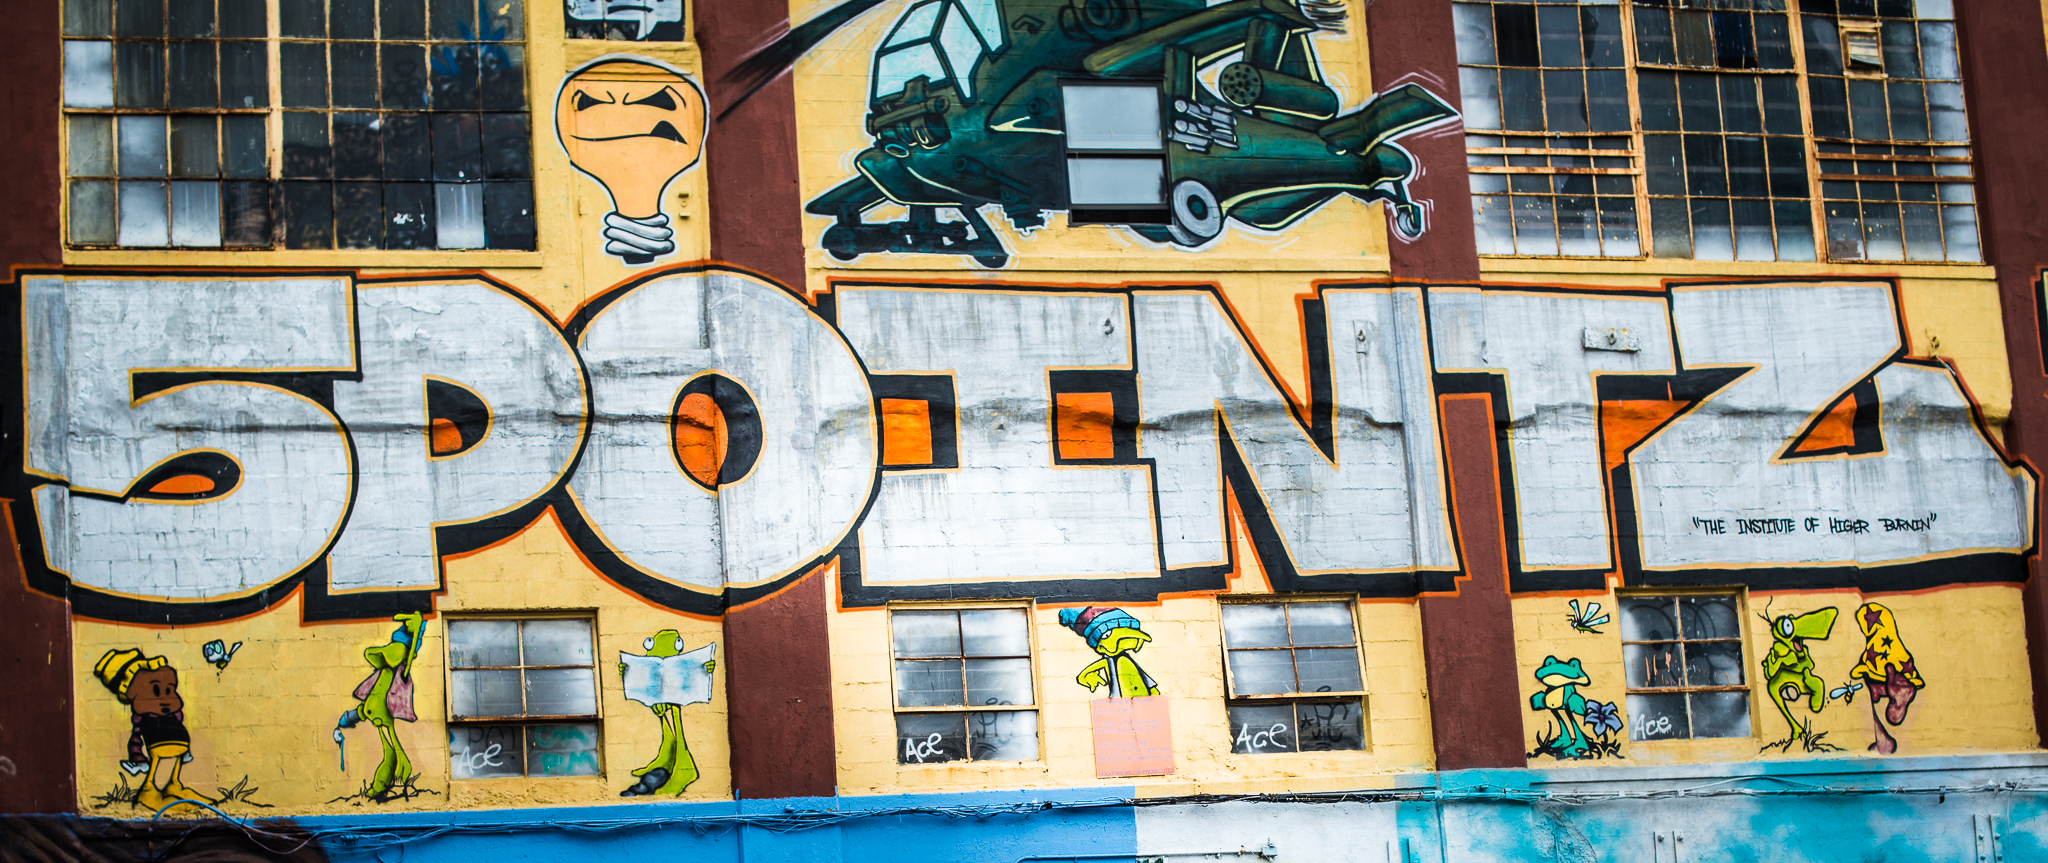 5pointz New york streetphoto 2013 850px-5